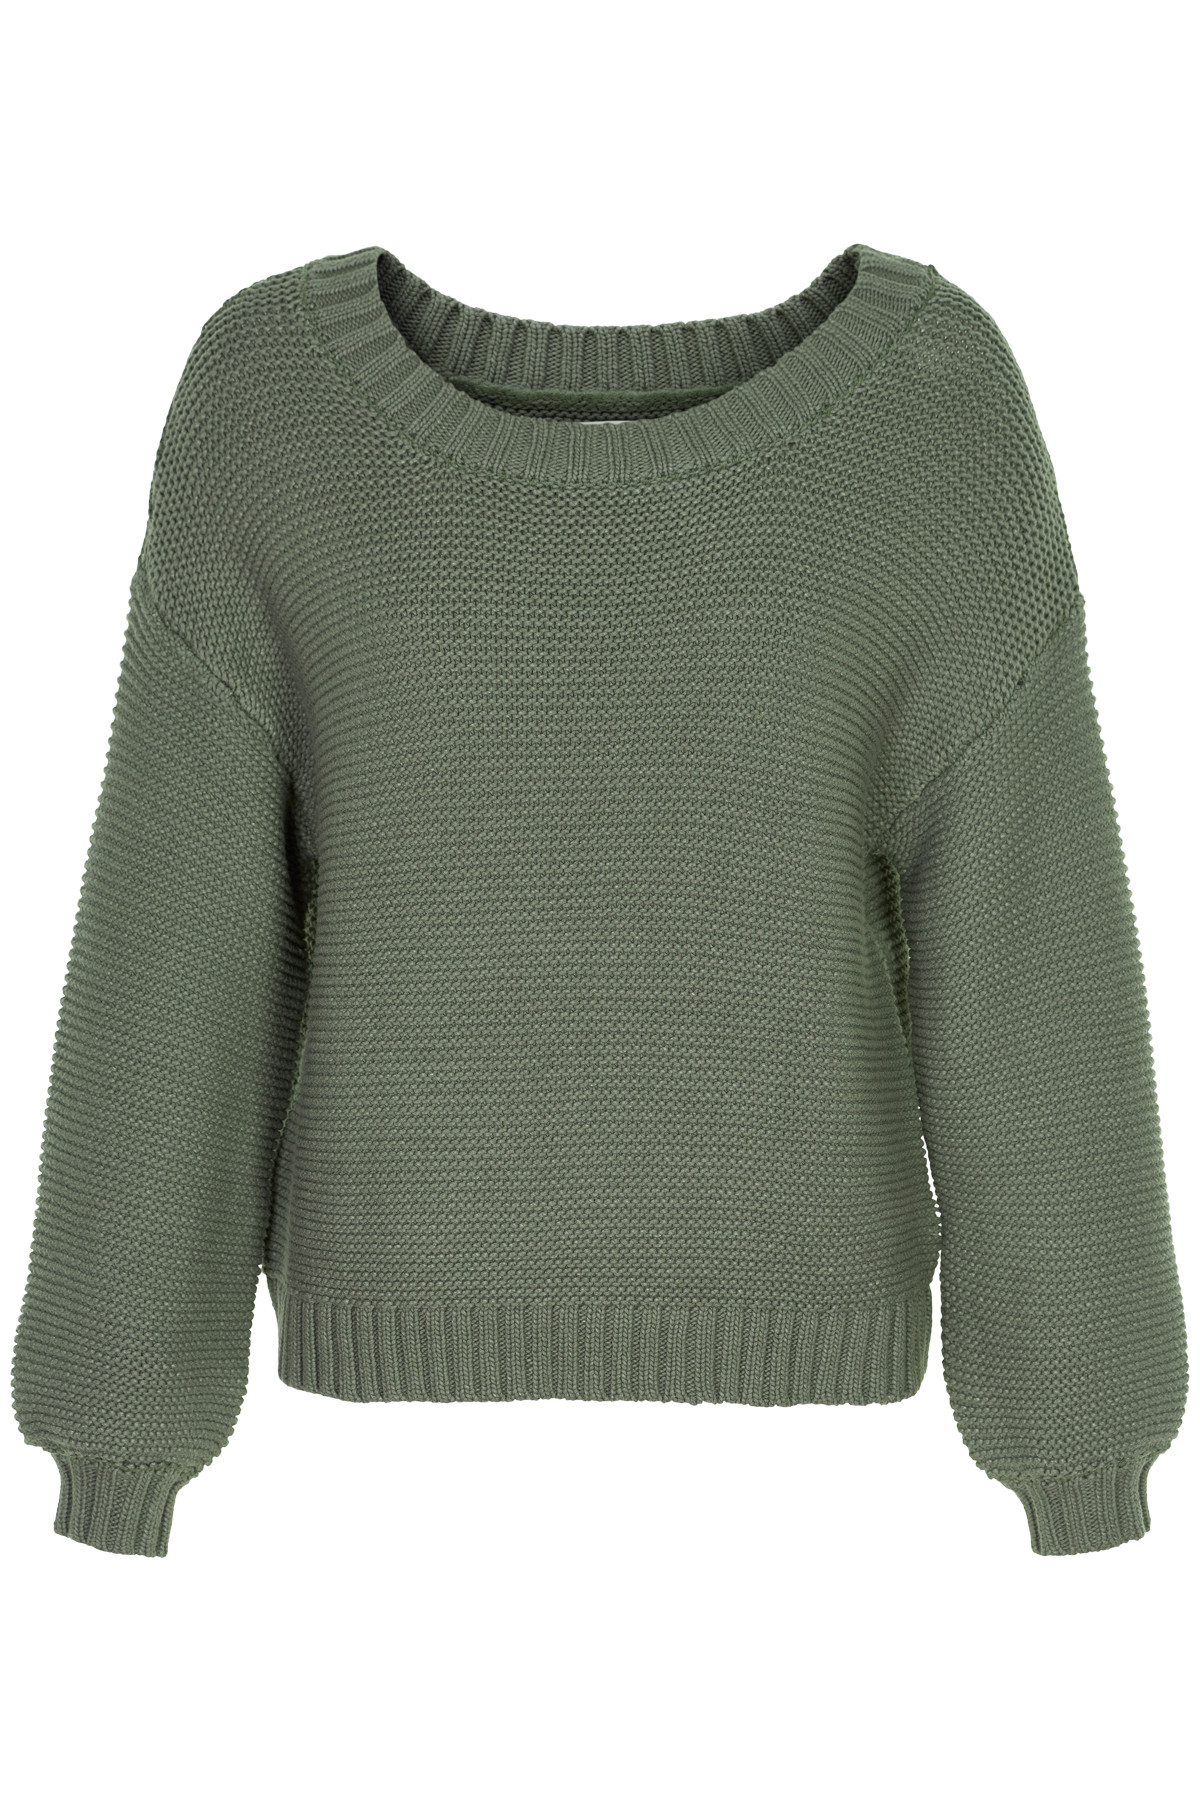 Image of   AND LESS RAIMONDO PULLOVER 5219206 (Castor Green, L)